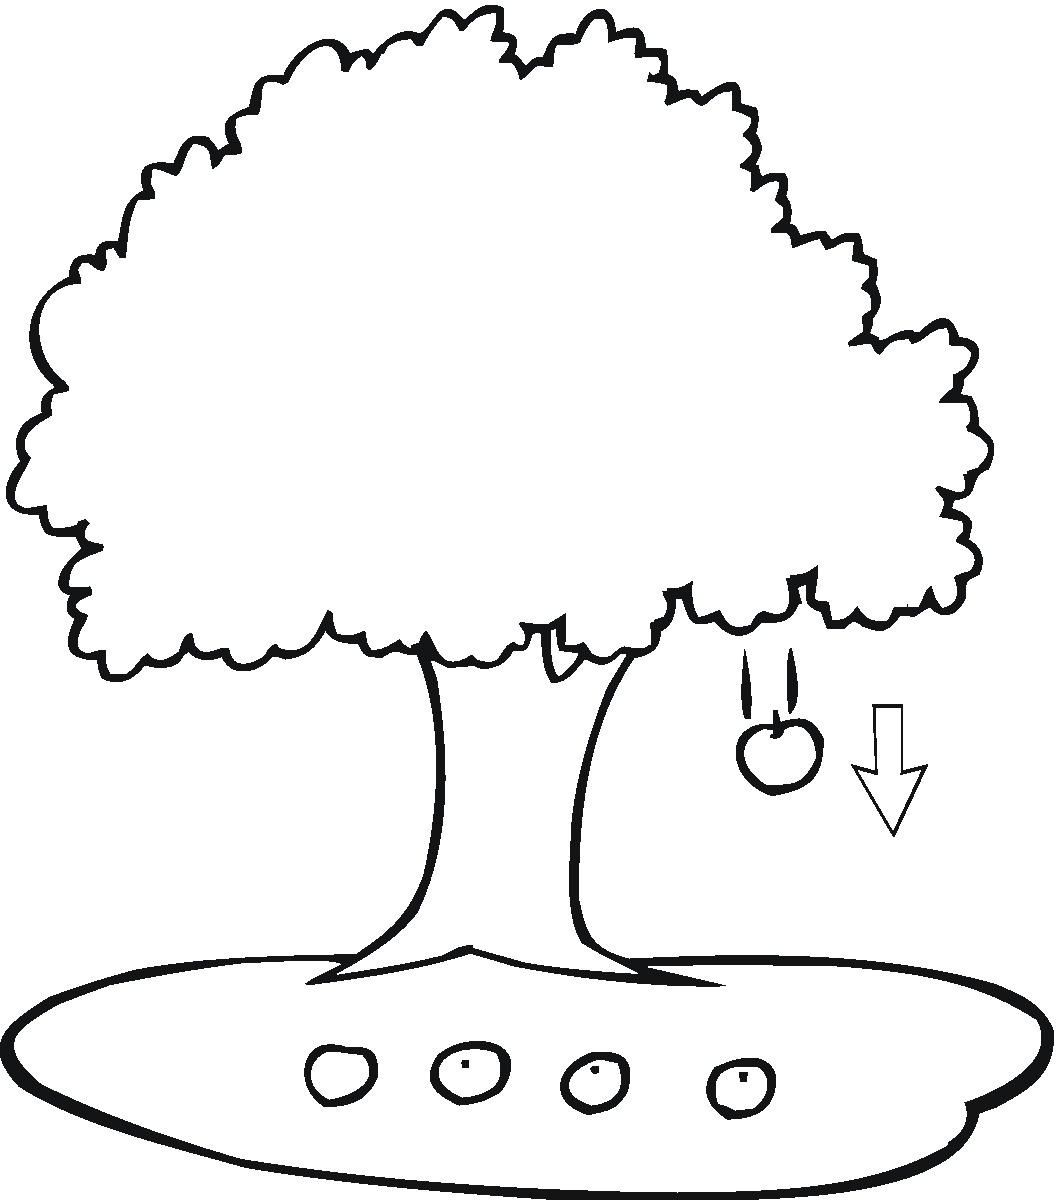 apple tree coloring pages - photo#9